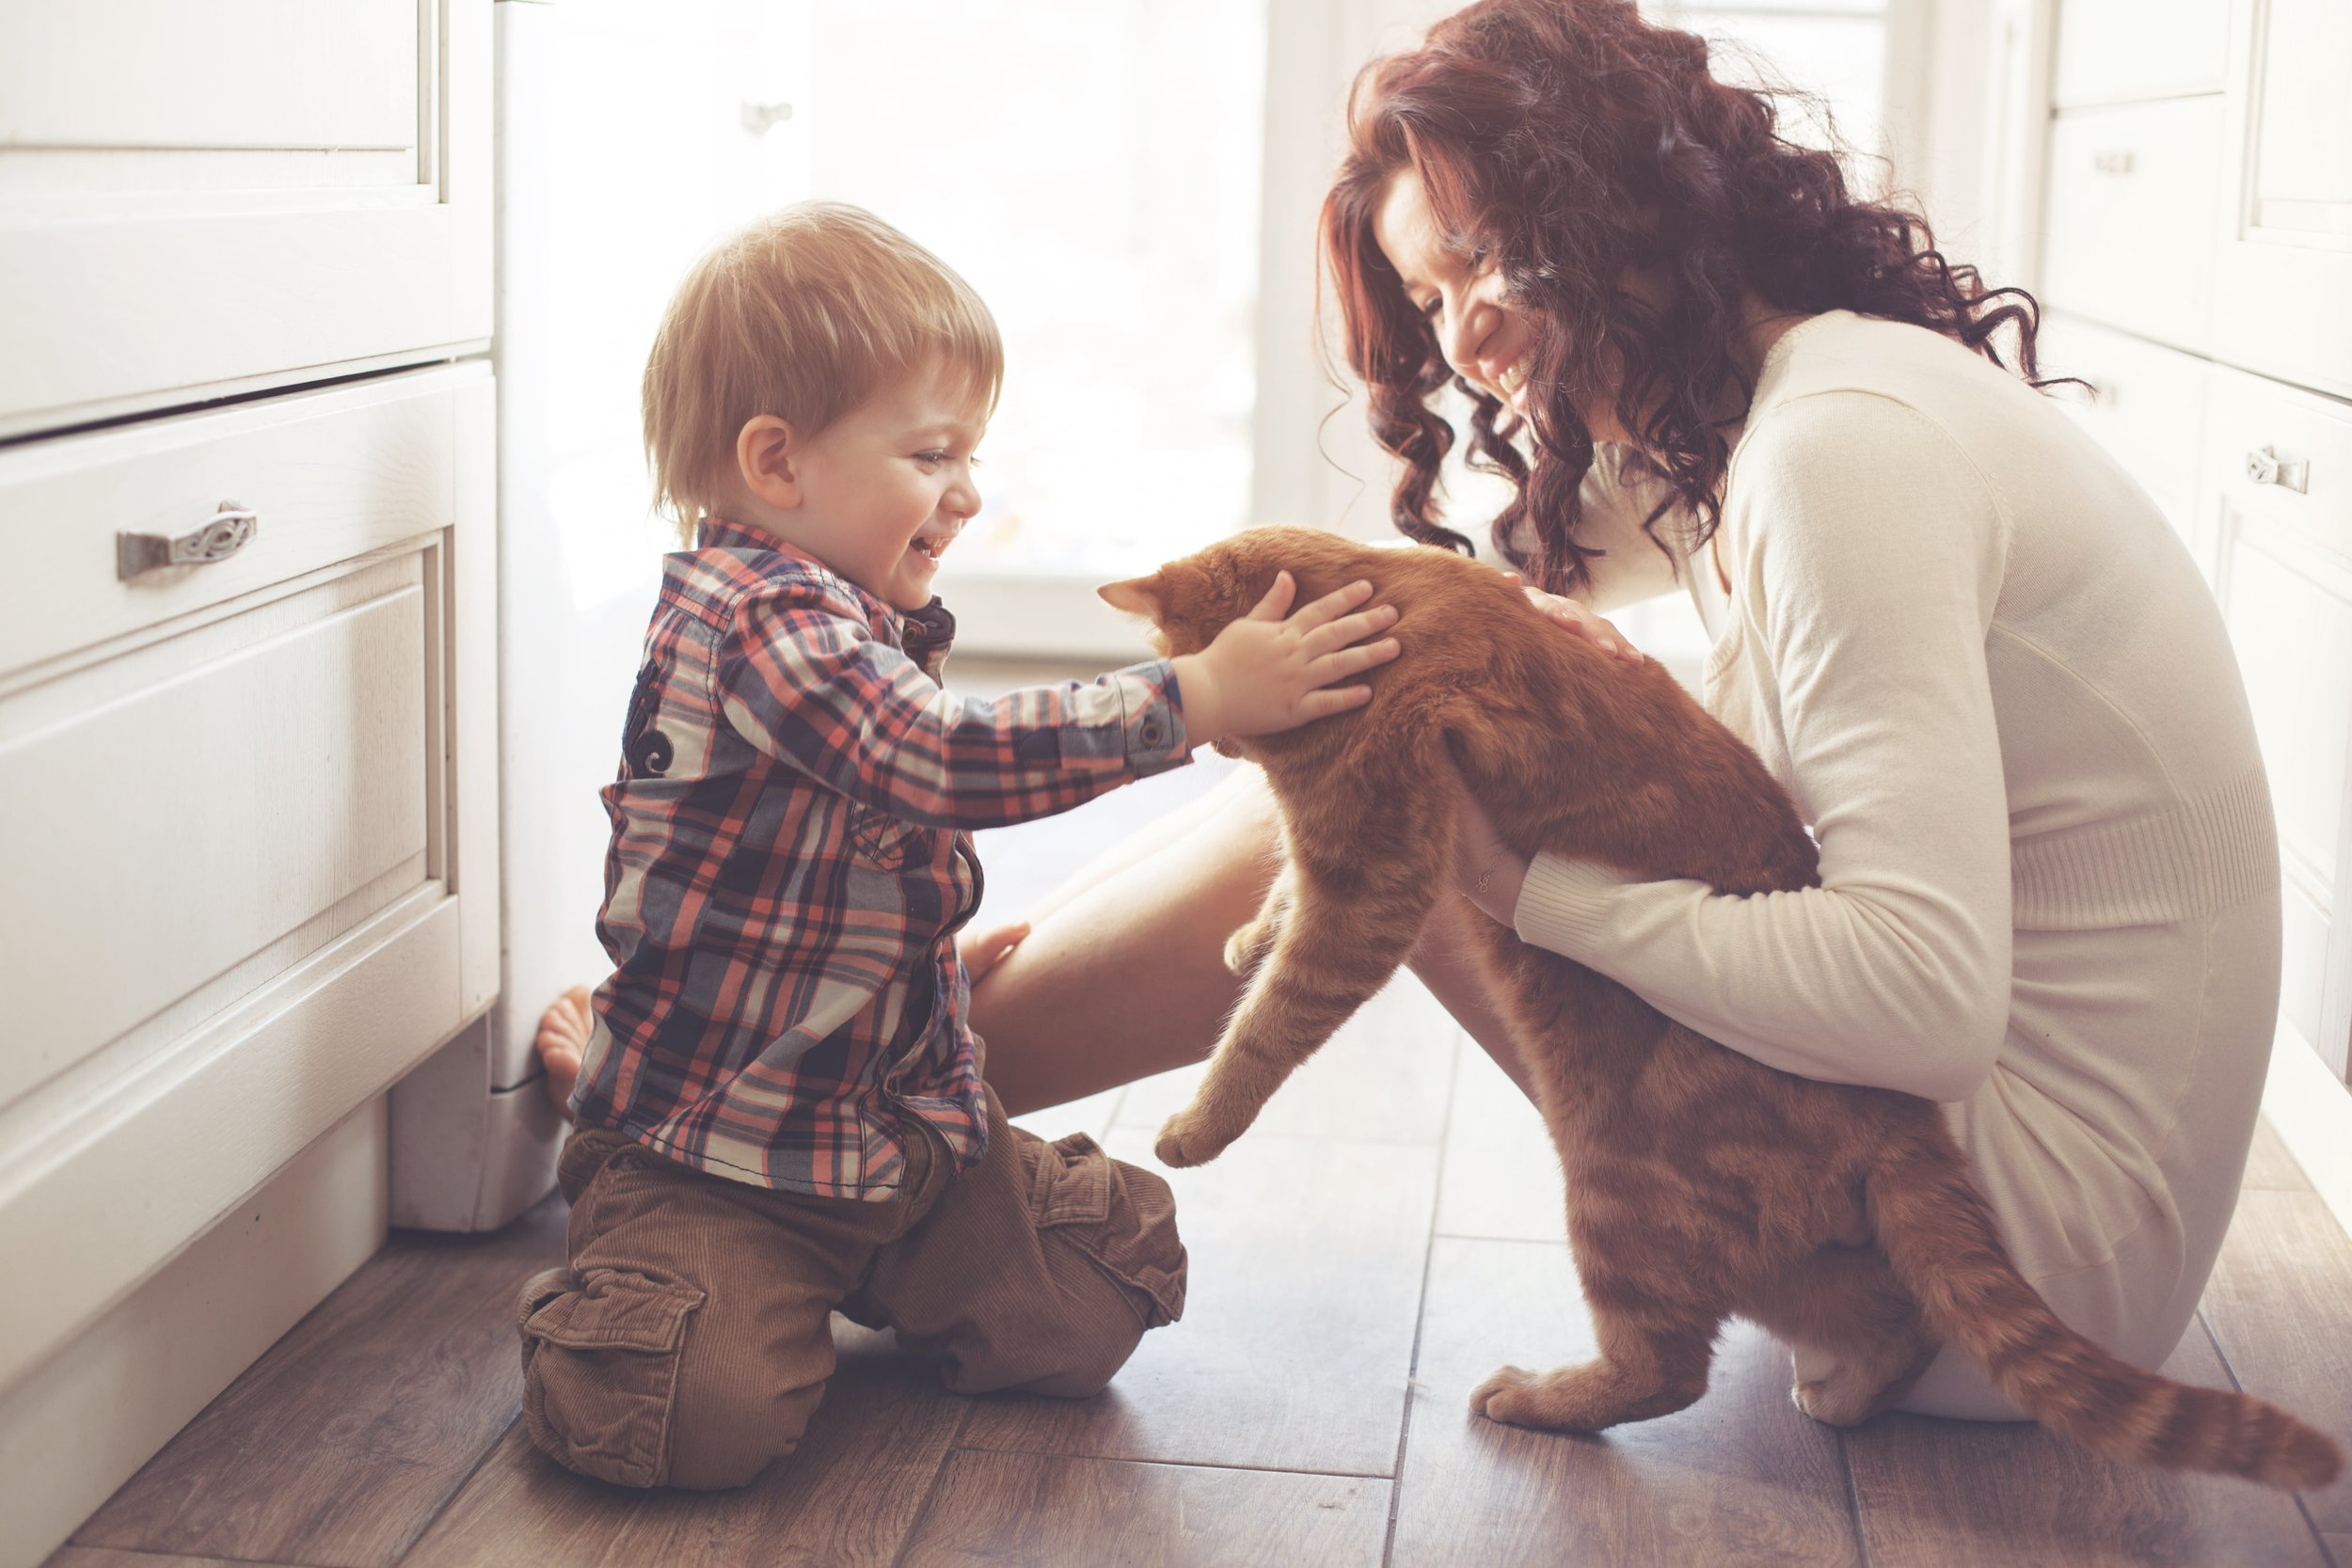 Pest Control Safe Around Children & Pets